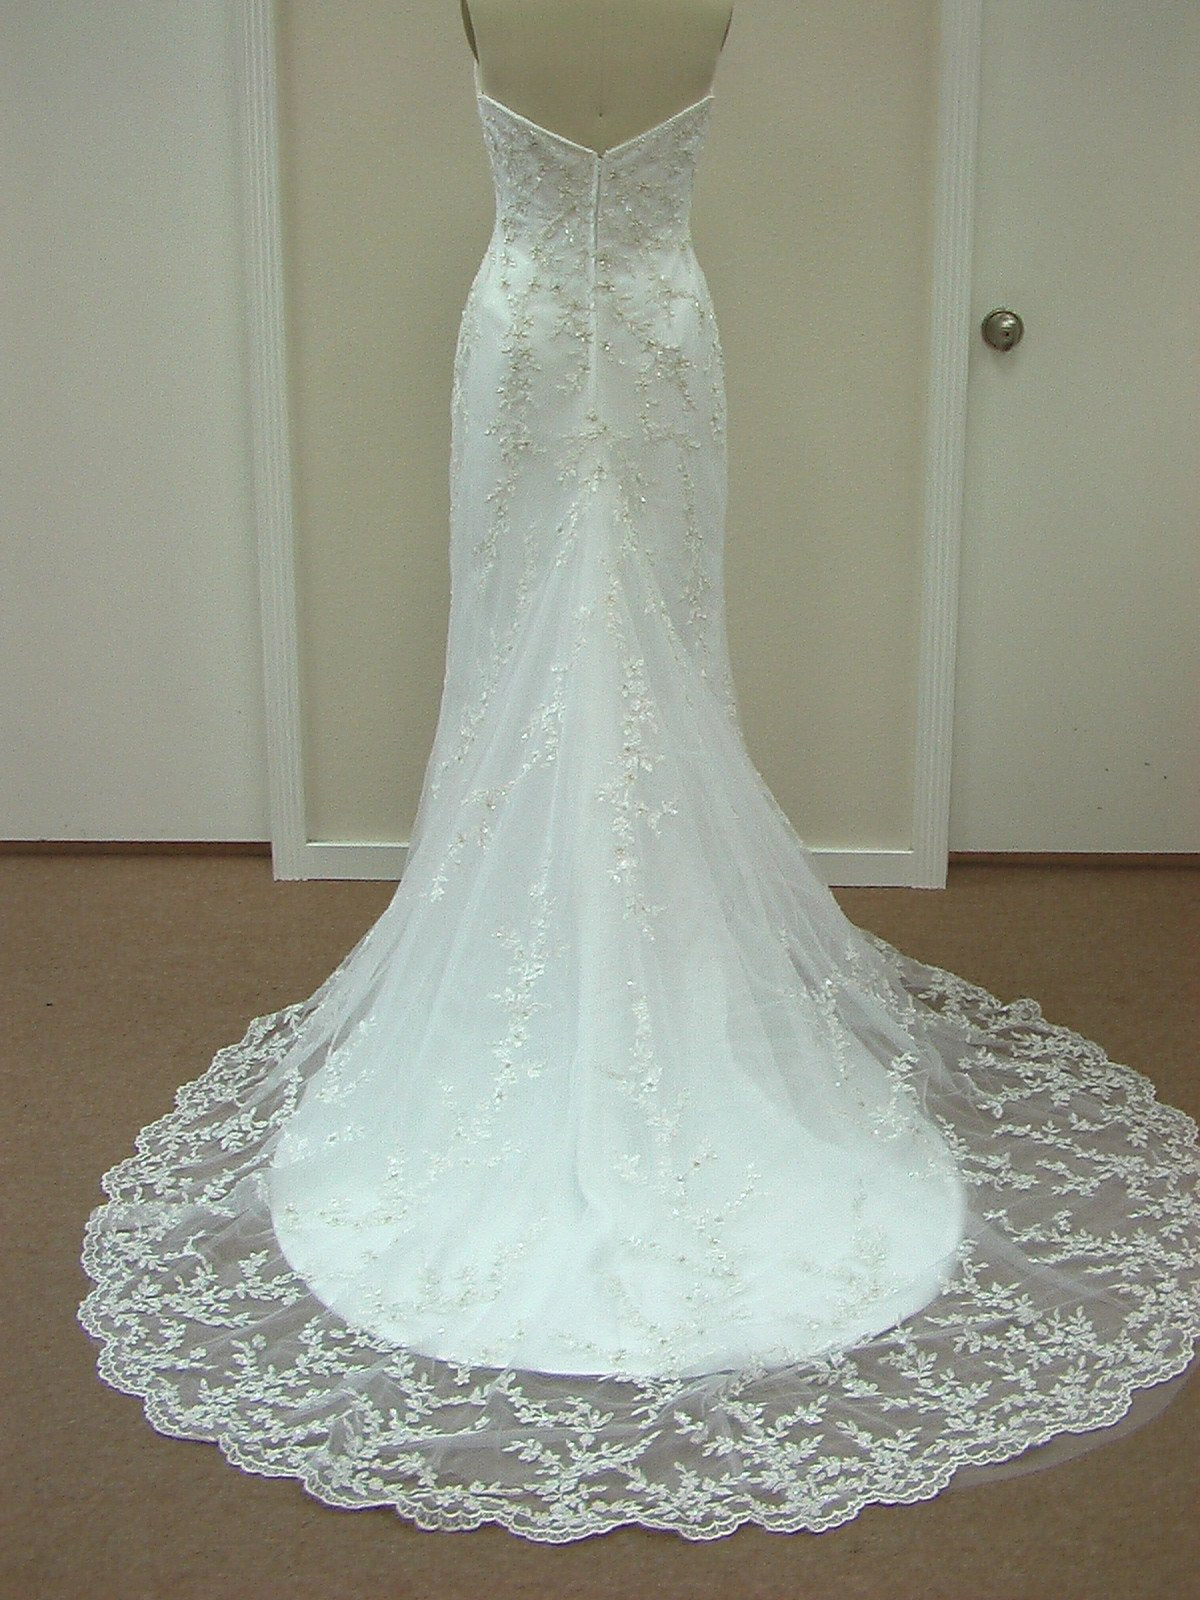 Casablanca 1820 Ivory/Silver size 10 In Stock Wedding Dress - Tom's Bridal